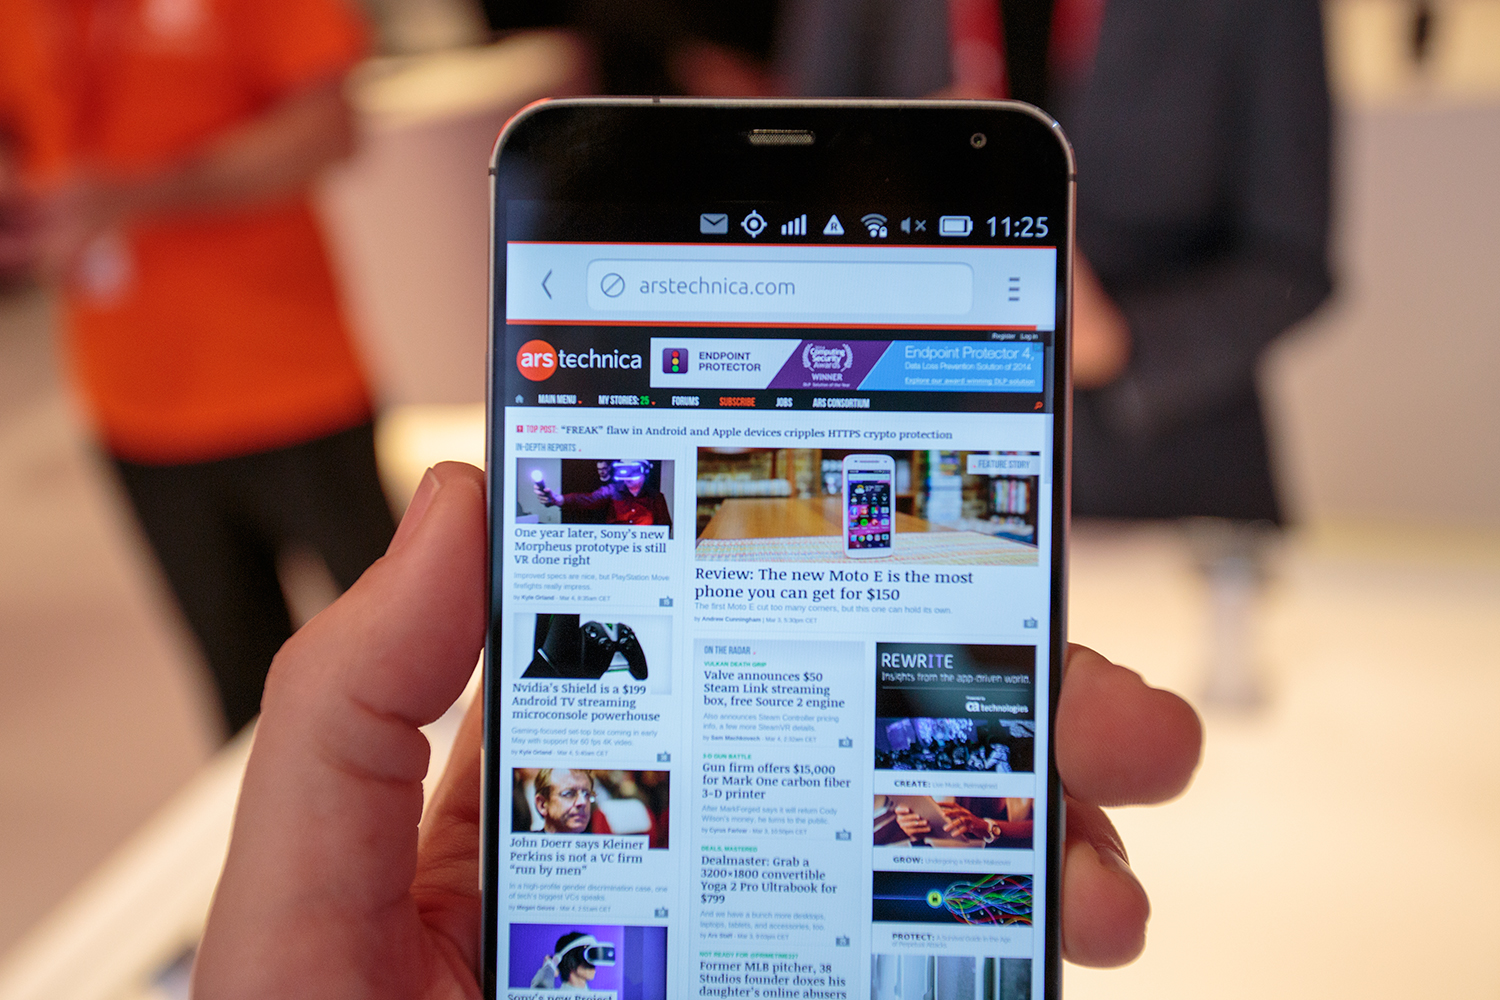 The Meizu MX4 Ubuntu Edition, displaying the greatest website in the world.